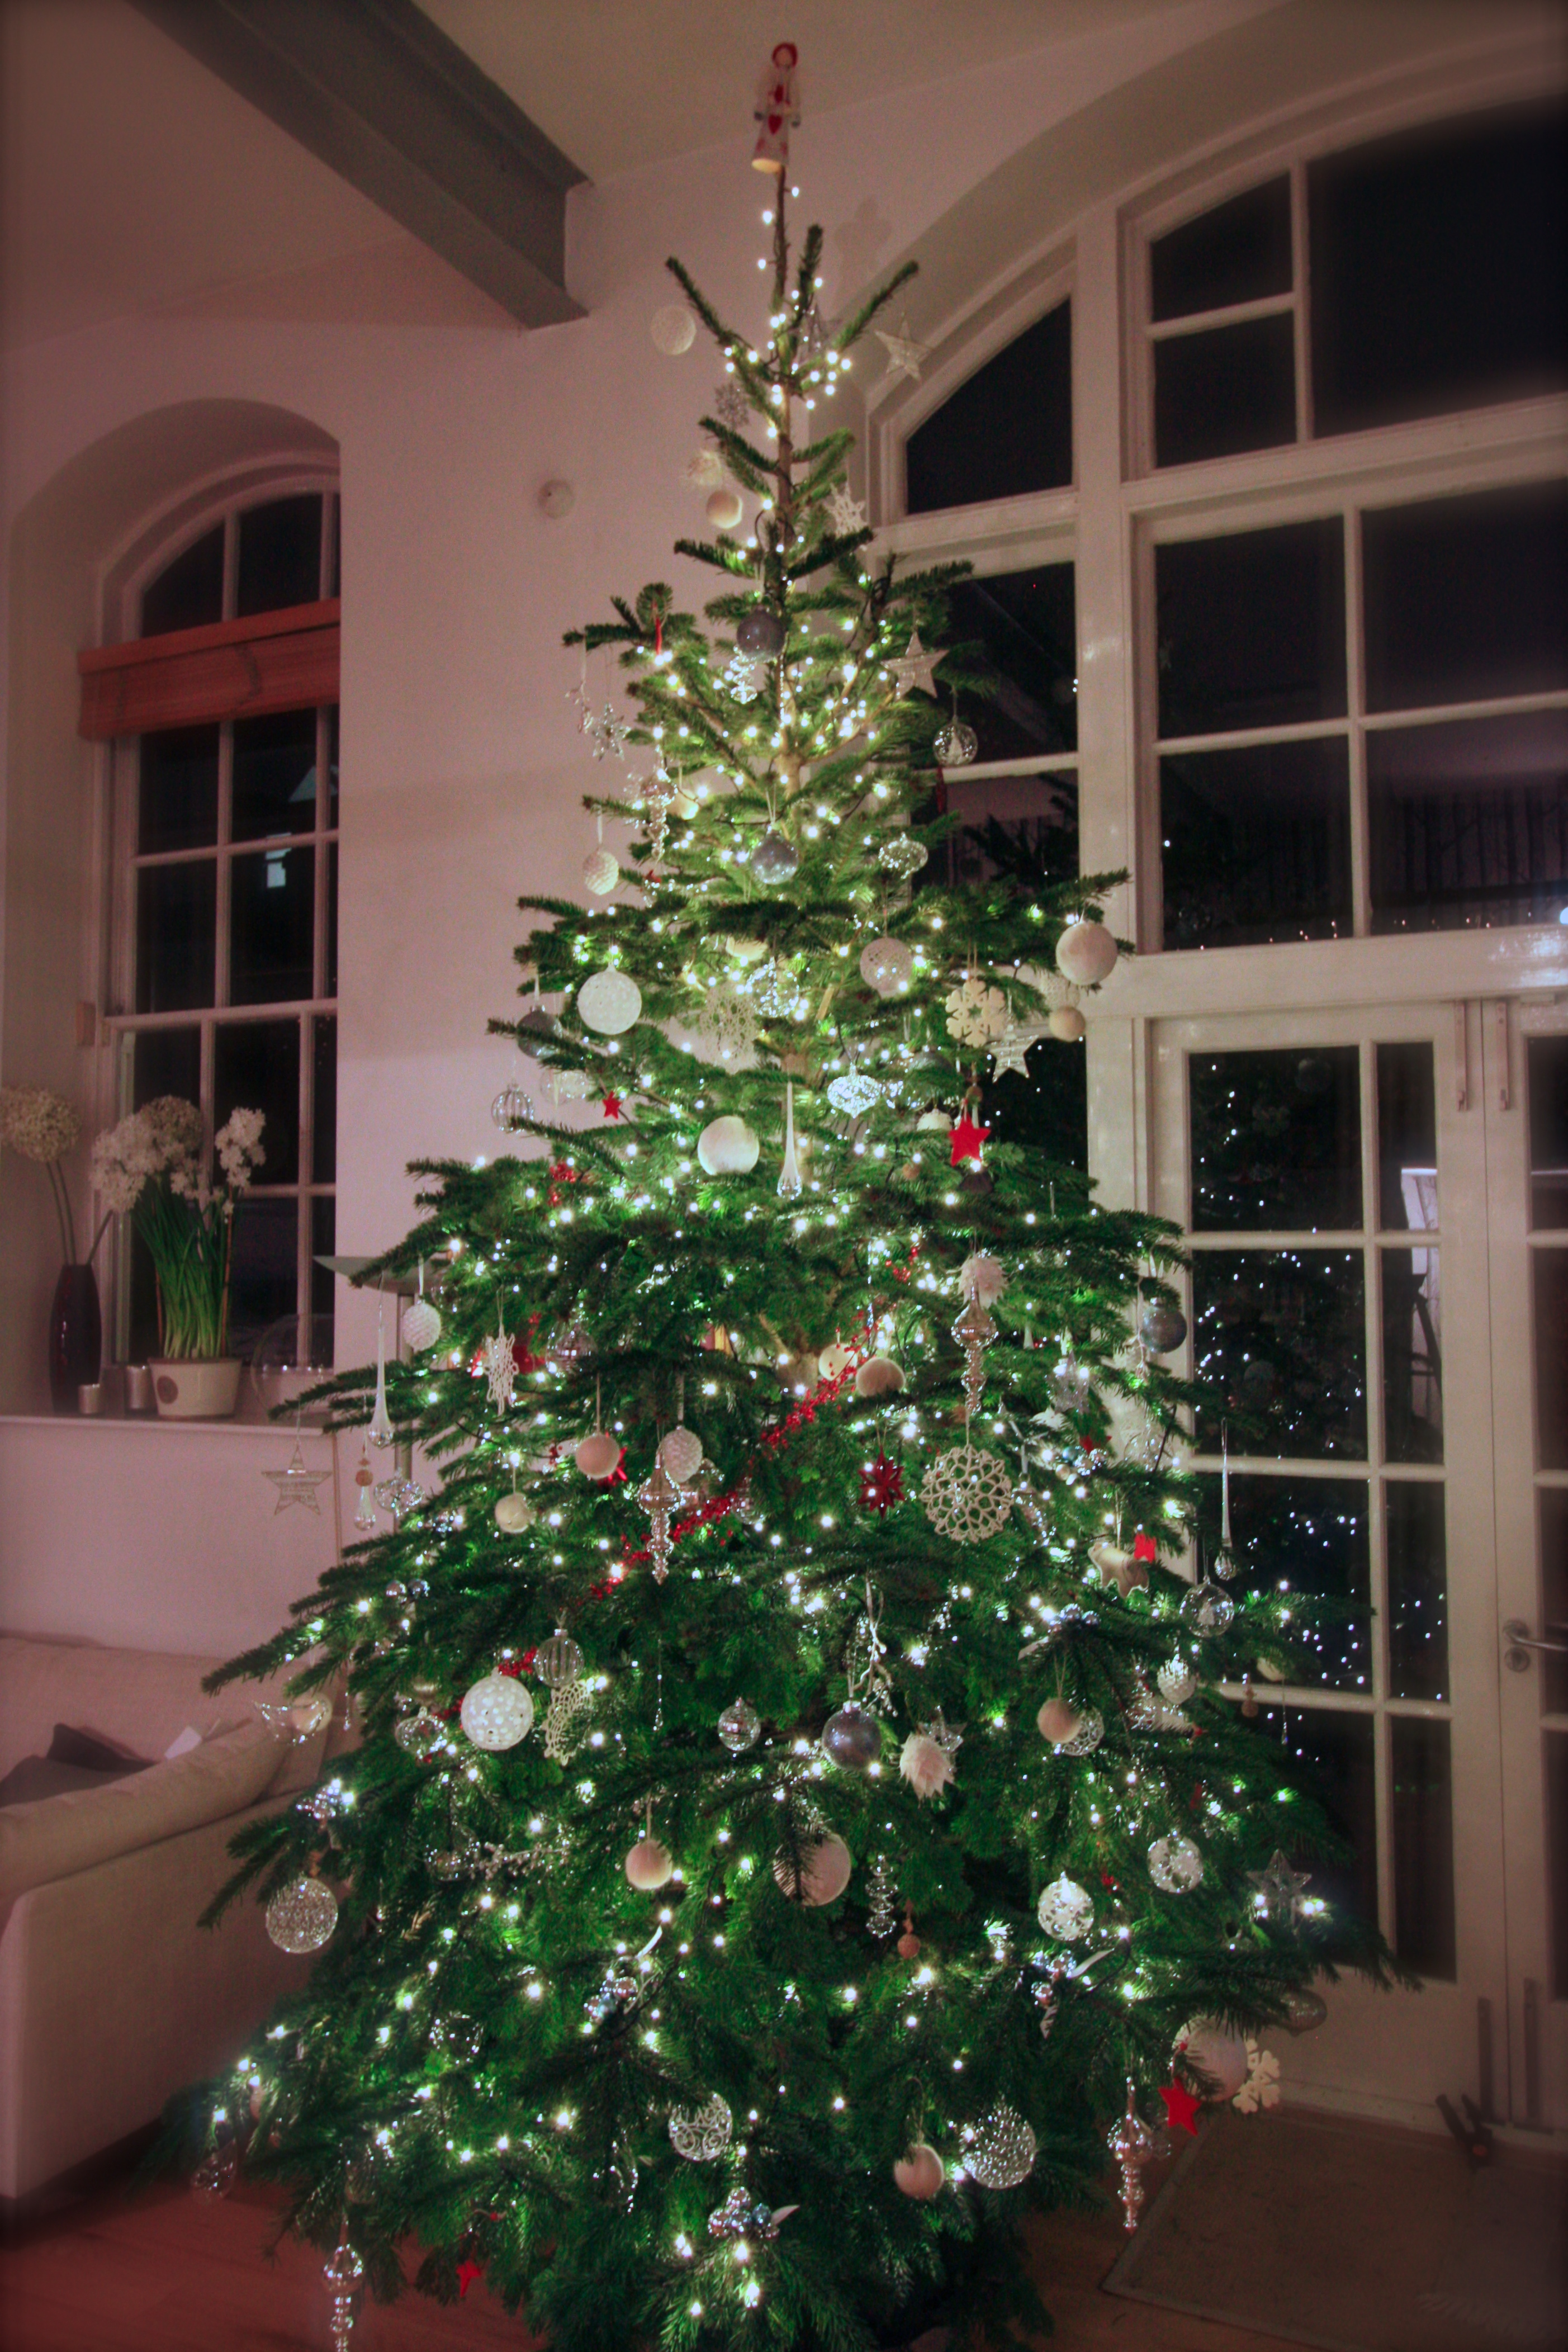 Our Christmas tree, London 2013